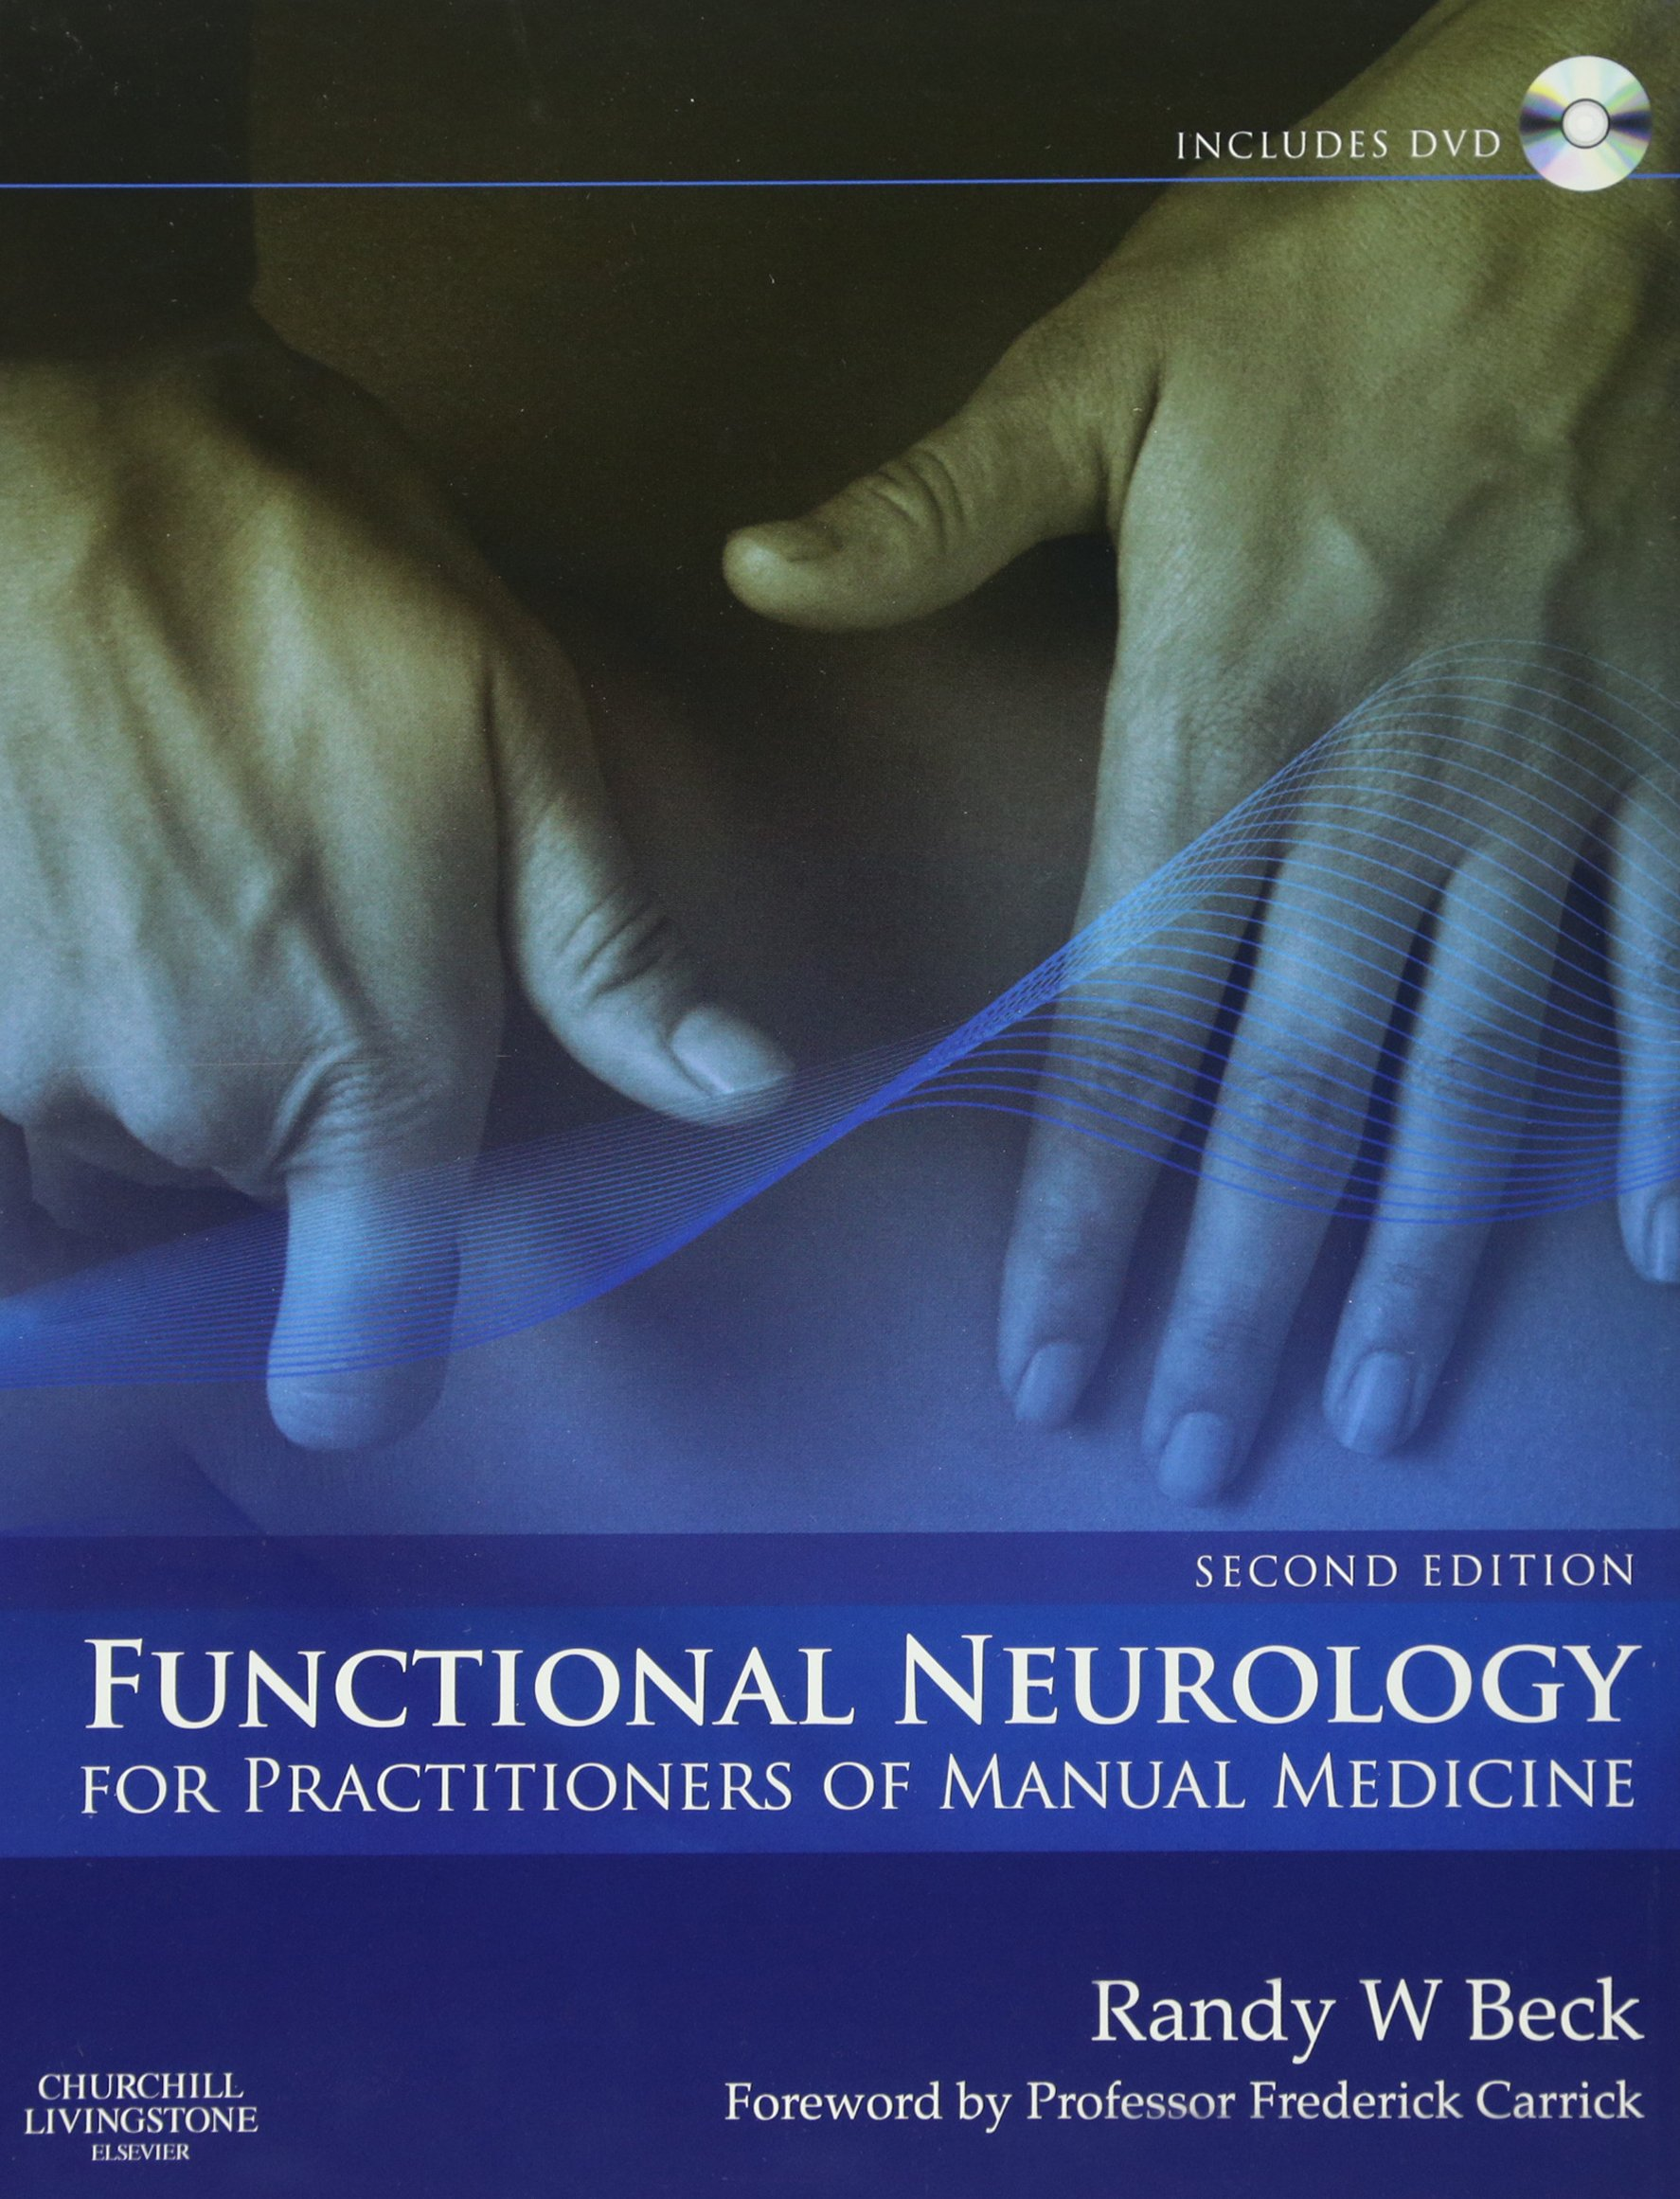 Image OfFunctional Neurology For Practitioners Of Manual Medicine